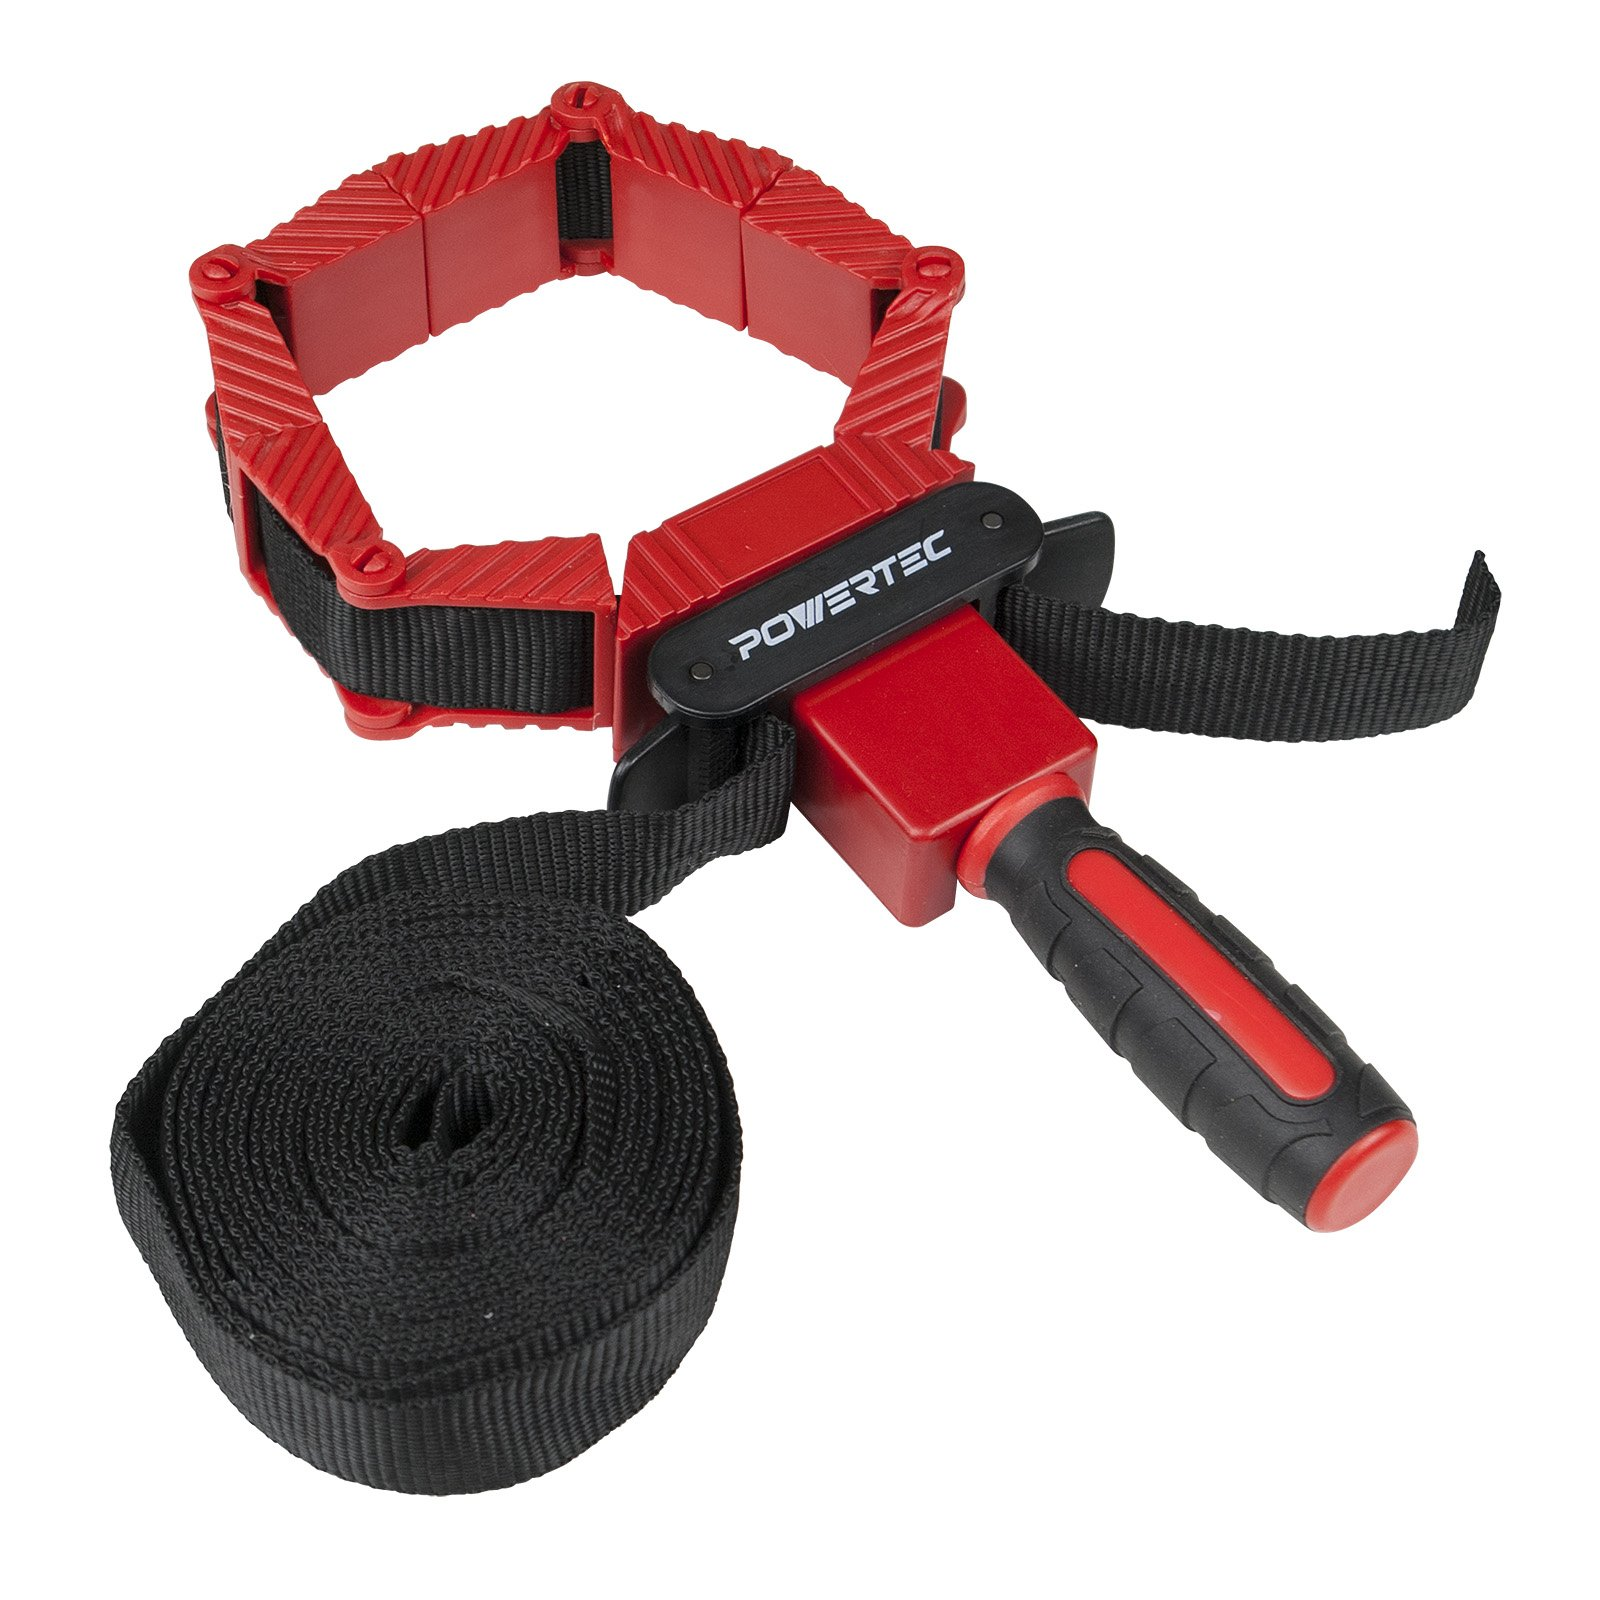 POWERTEC 71122 Deluxe Polygon Clamp with Quick-Release Lever